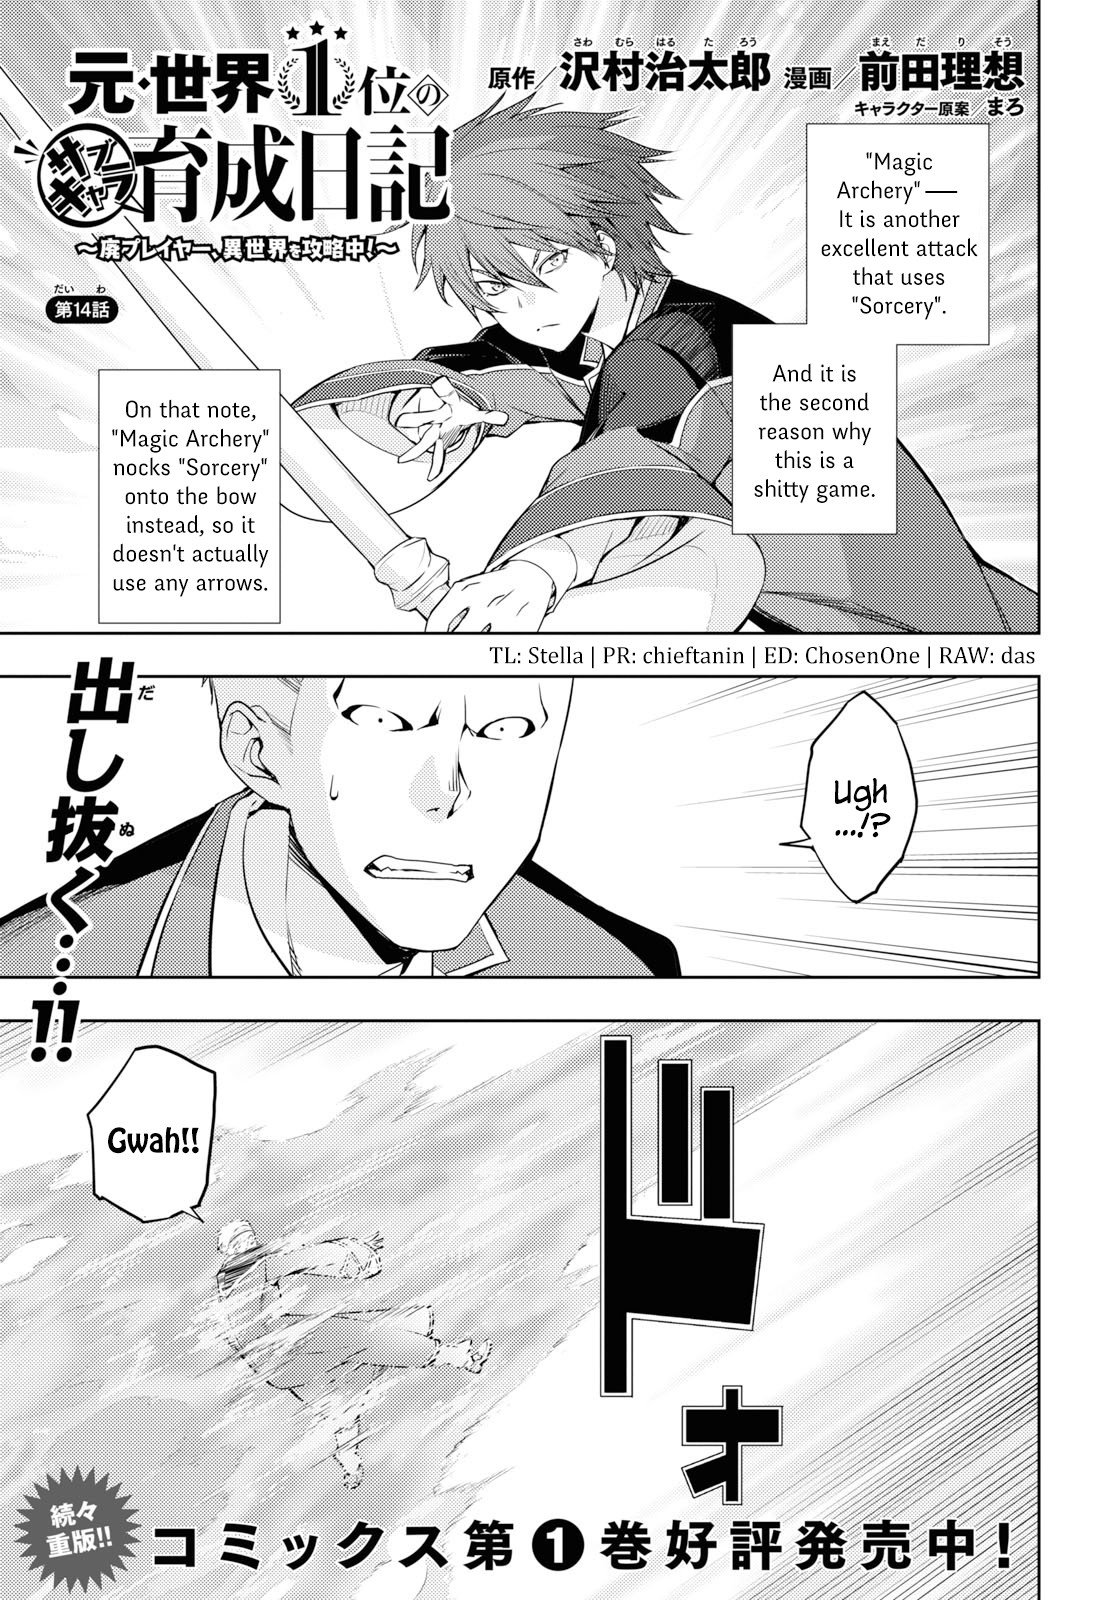 Manga The Former Top 1's Sub-Character Training Diary ~A Dedicated Player is Currently Conquering Another World!~ - Chapter 14 Page 1